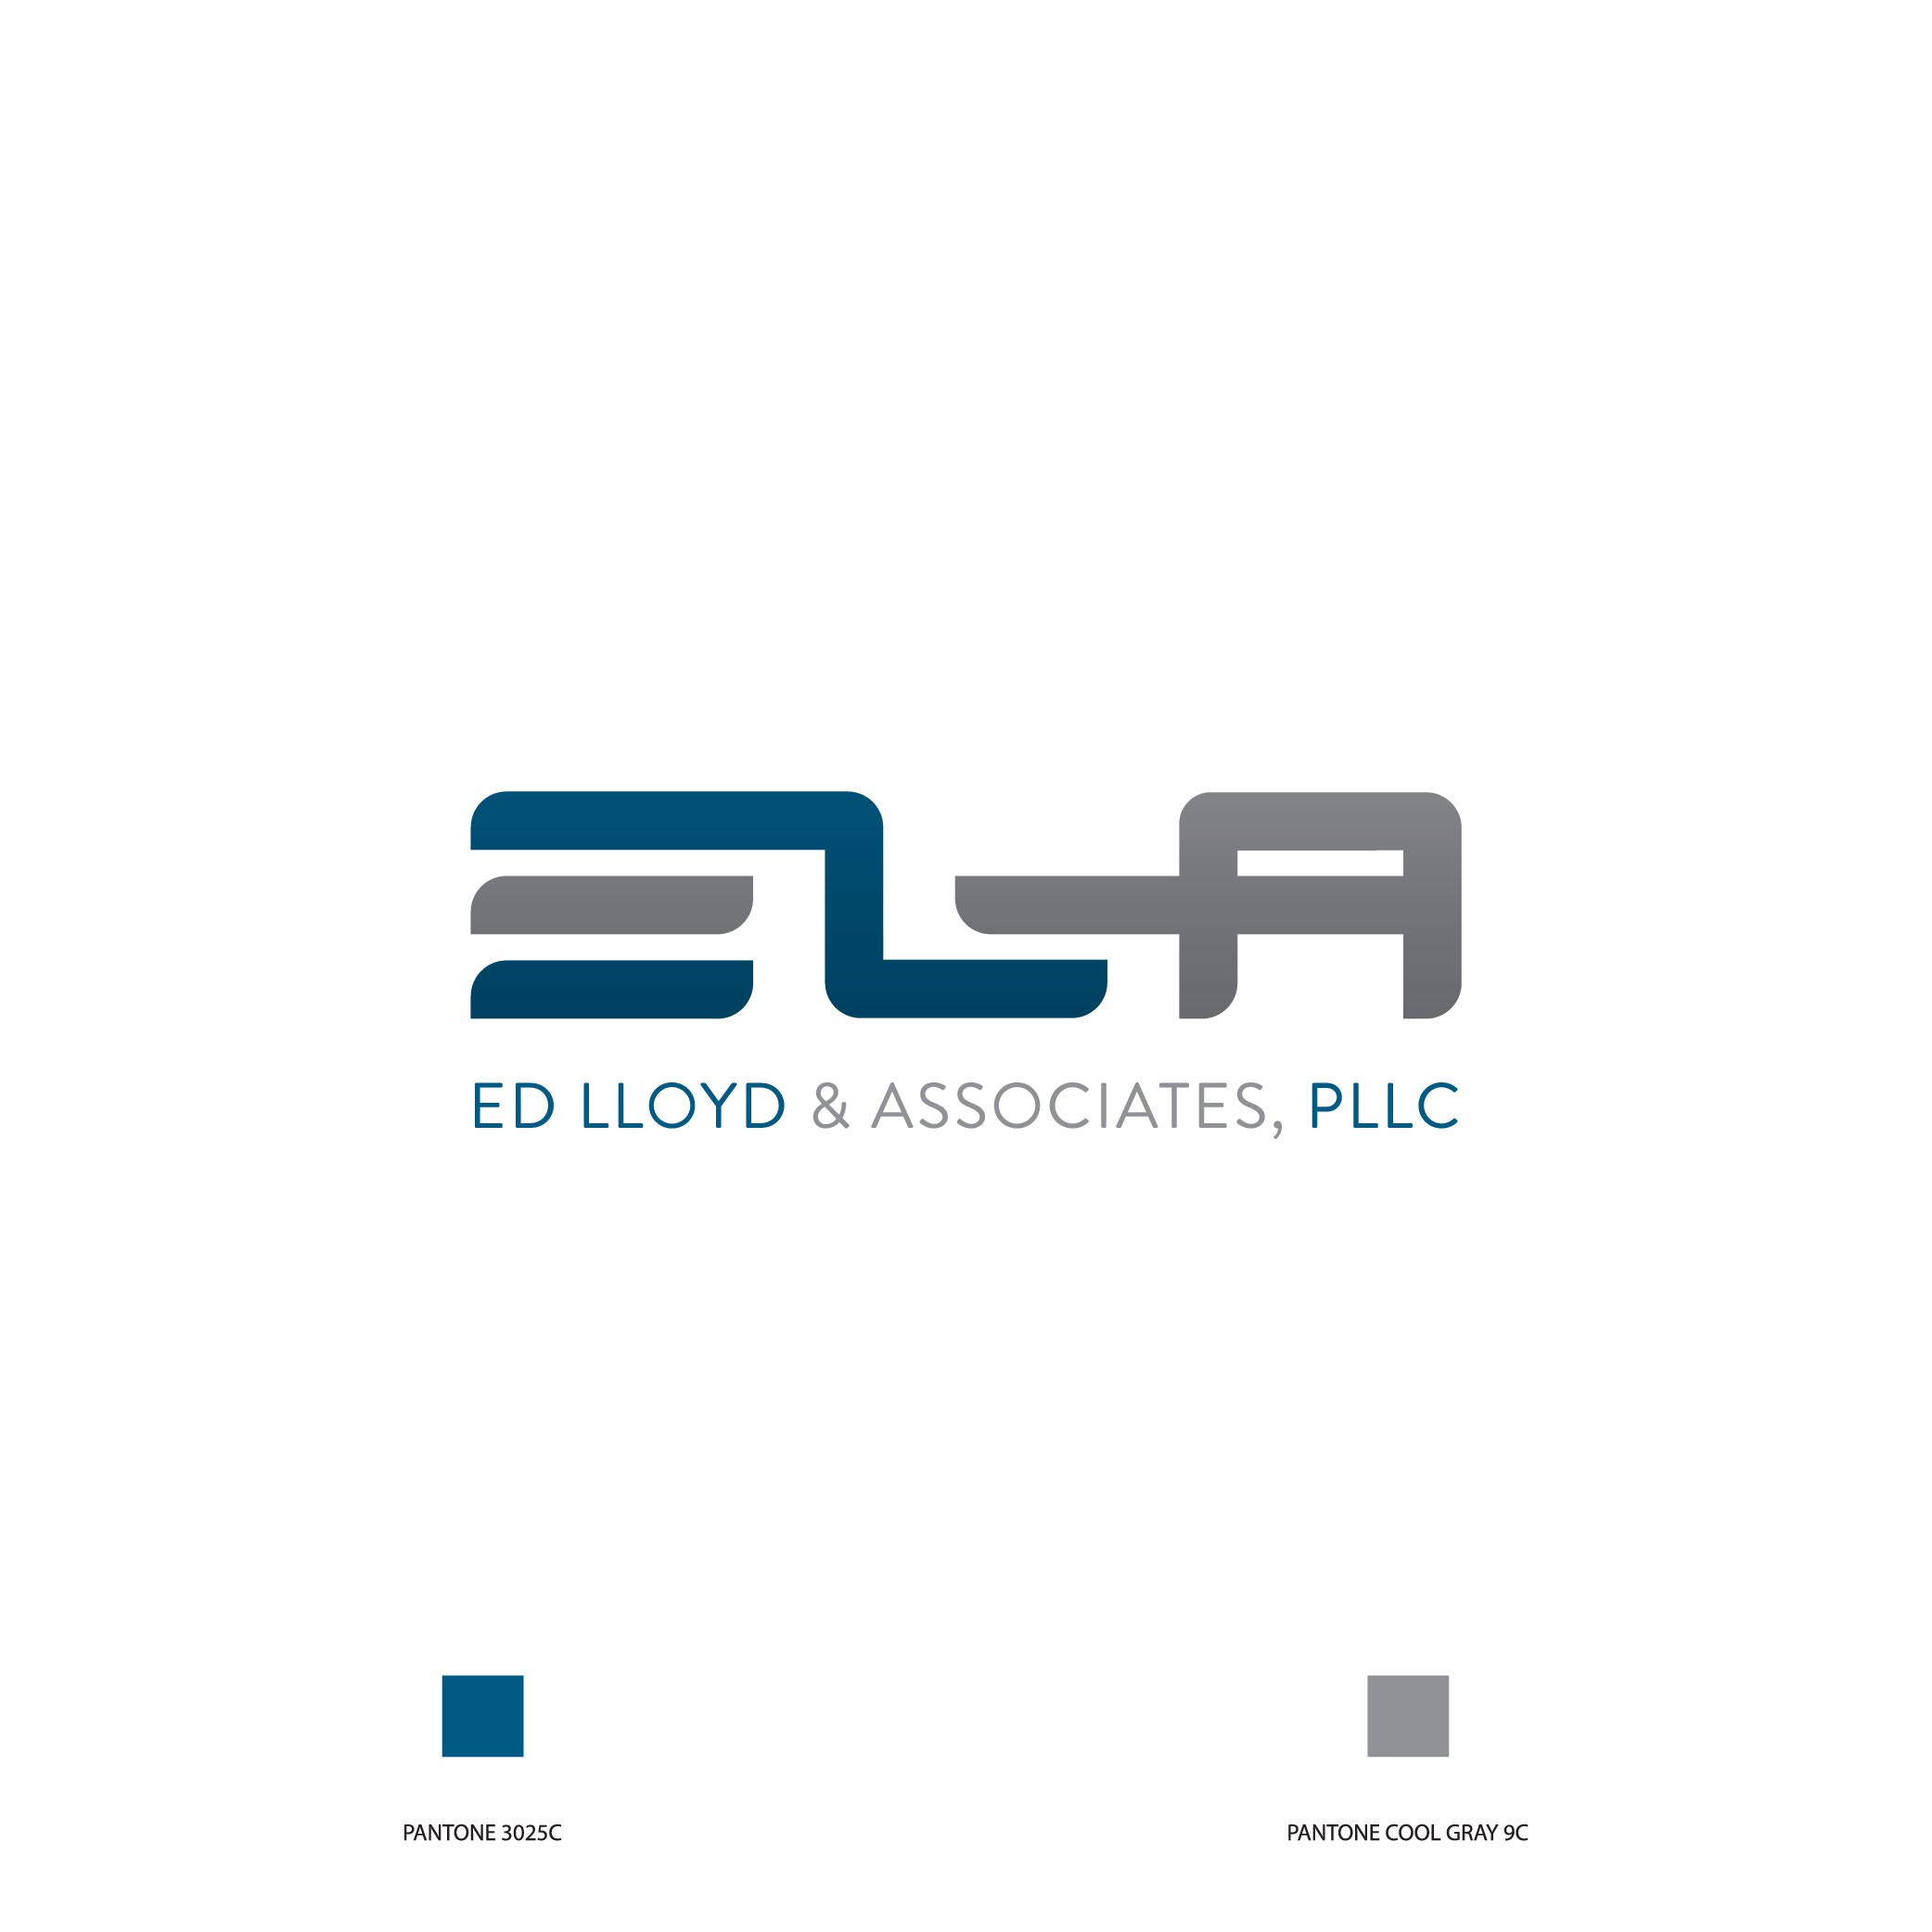 Design a logo and identify for cutting edge CPA businesses